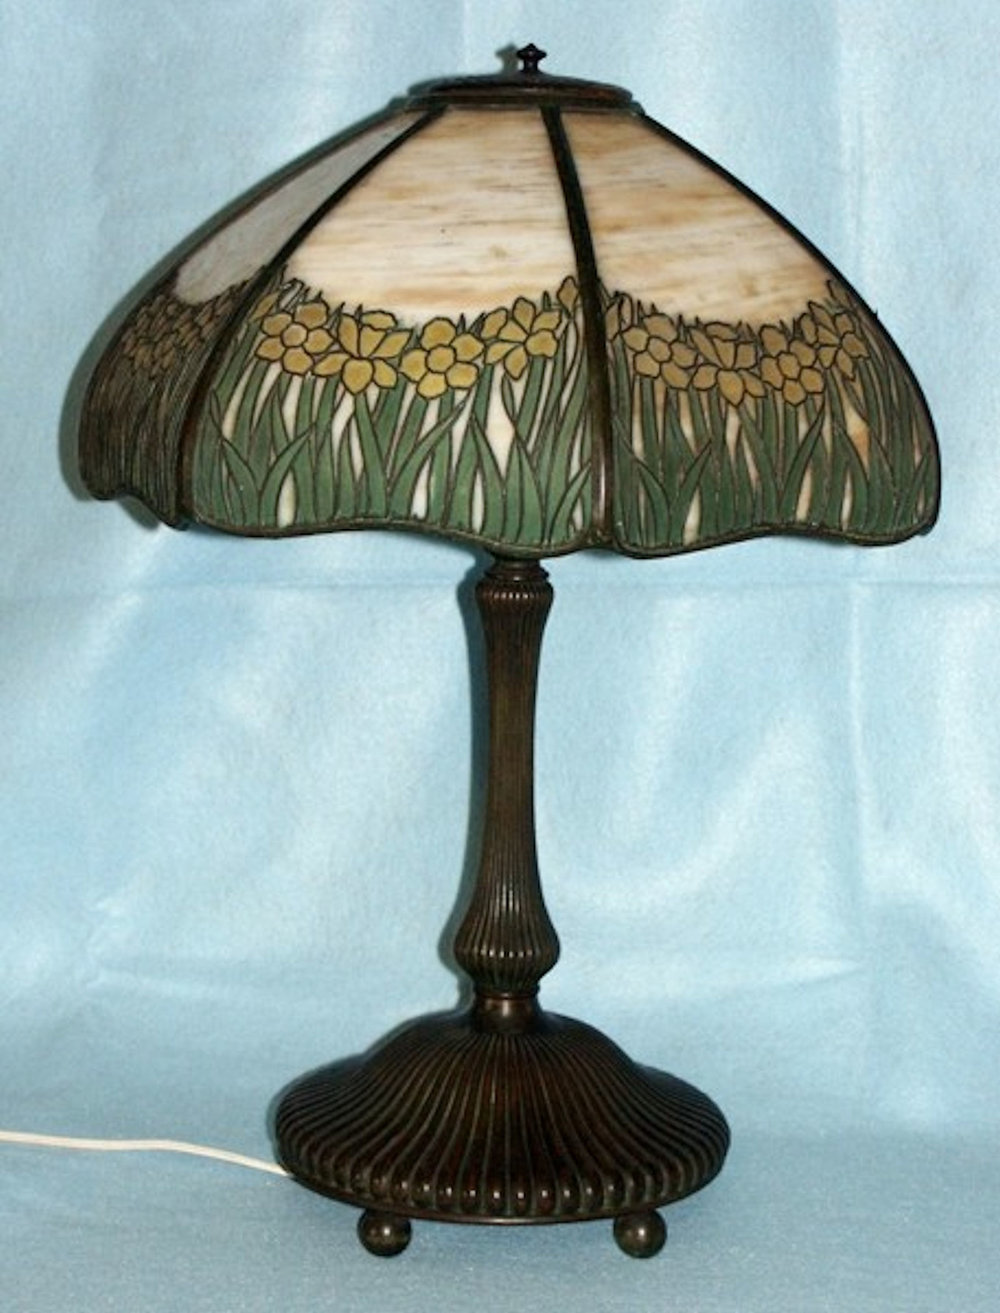 Tiffany Lamp.jpg